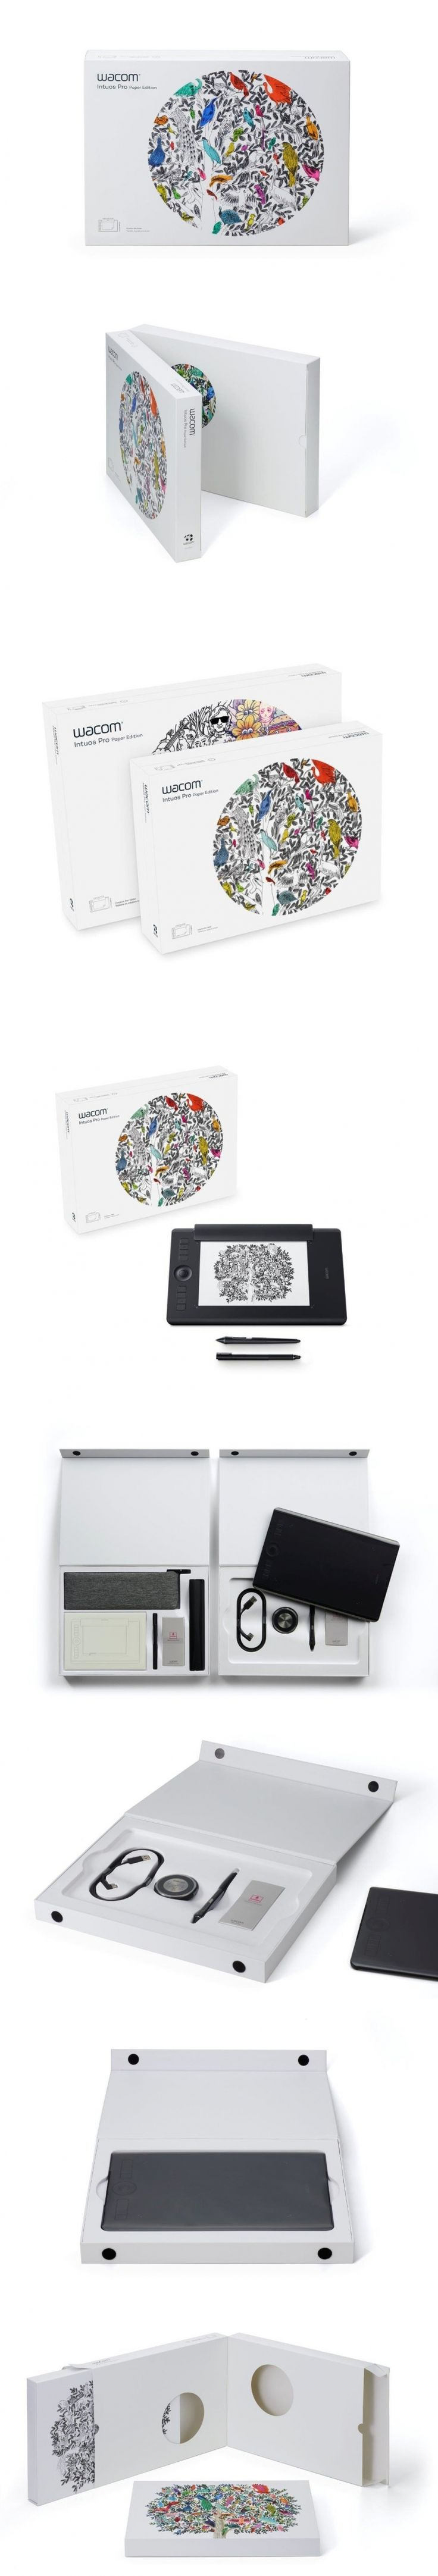 Wacom Intuos Paper Edition Wants You To Visualize Where The Product Can Take You — The Dieline | Packaging & Branding Design & Innovation News